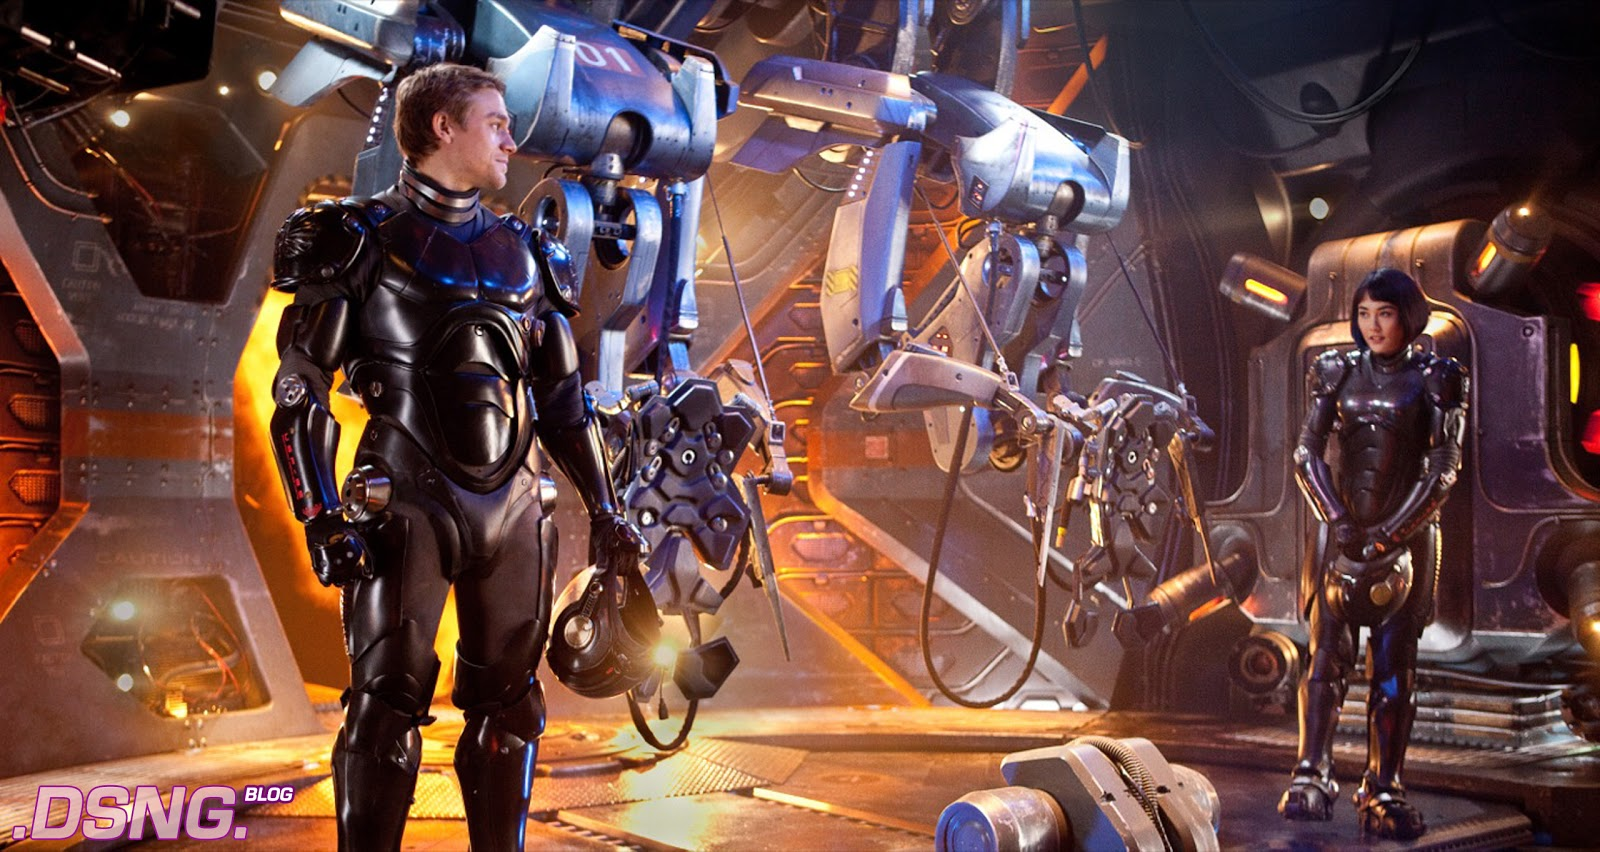 http://1.bp.blogspot.com/-5LYhv-DpkoE/UNbLPz63ssI/AAAAAAAAIDE/oZPk7d-5Fk4/s1600/PACIFICRIM+WAR+pacific+rim+Charlie+Hunnam+and+Rinko+Kikuchi+2013+sci+fi+fantasy+action+movie+armor+exo+suit+costume+concept+giant+robot+dsng+3+behind+the+scenes+poster.jpg